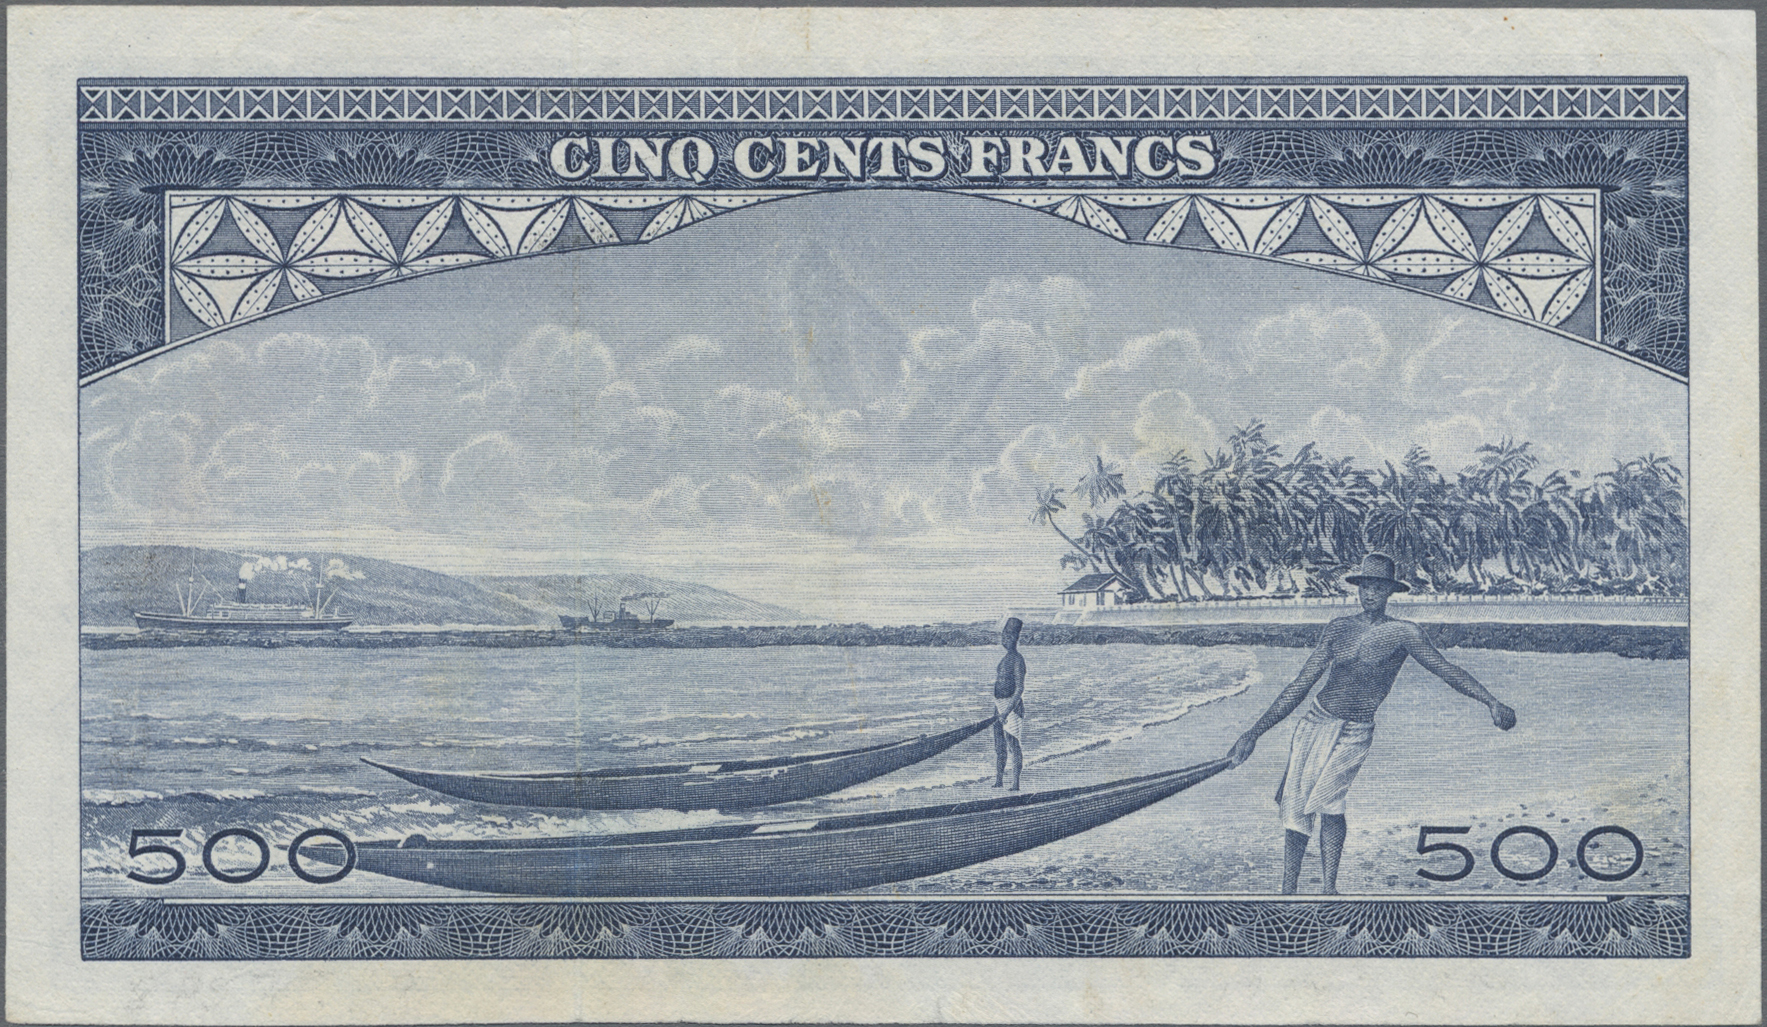 Lot 00111 - Guinea | Banknoten  -  Auktionshaus Christoph Gärtner GmbH & Co. KG 51th Auction - Day 1